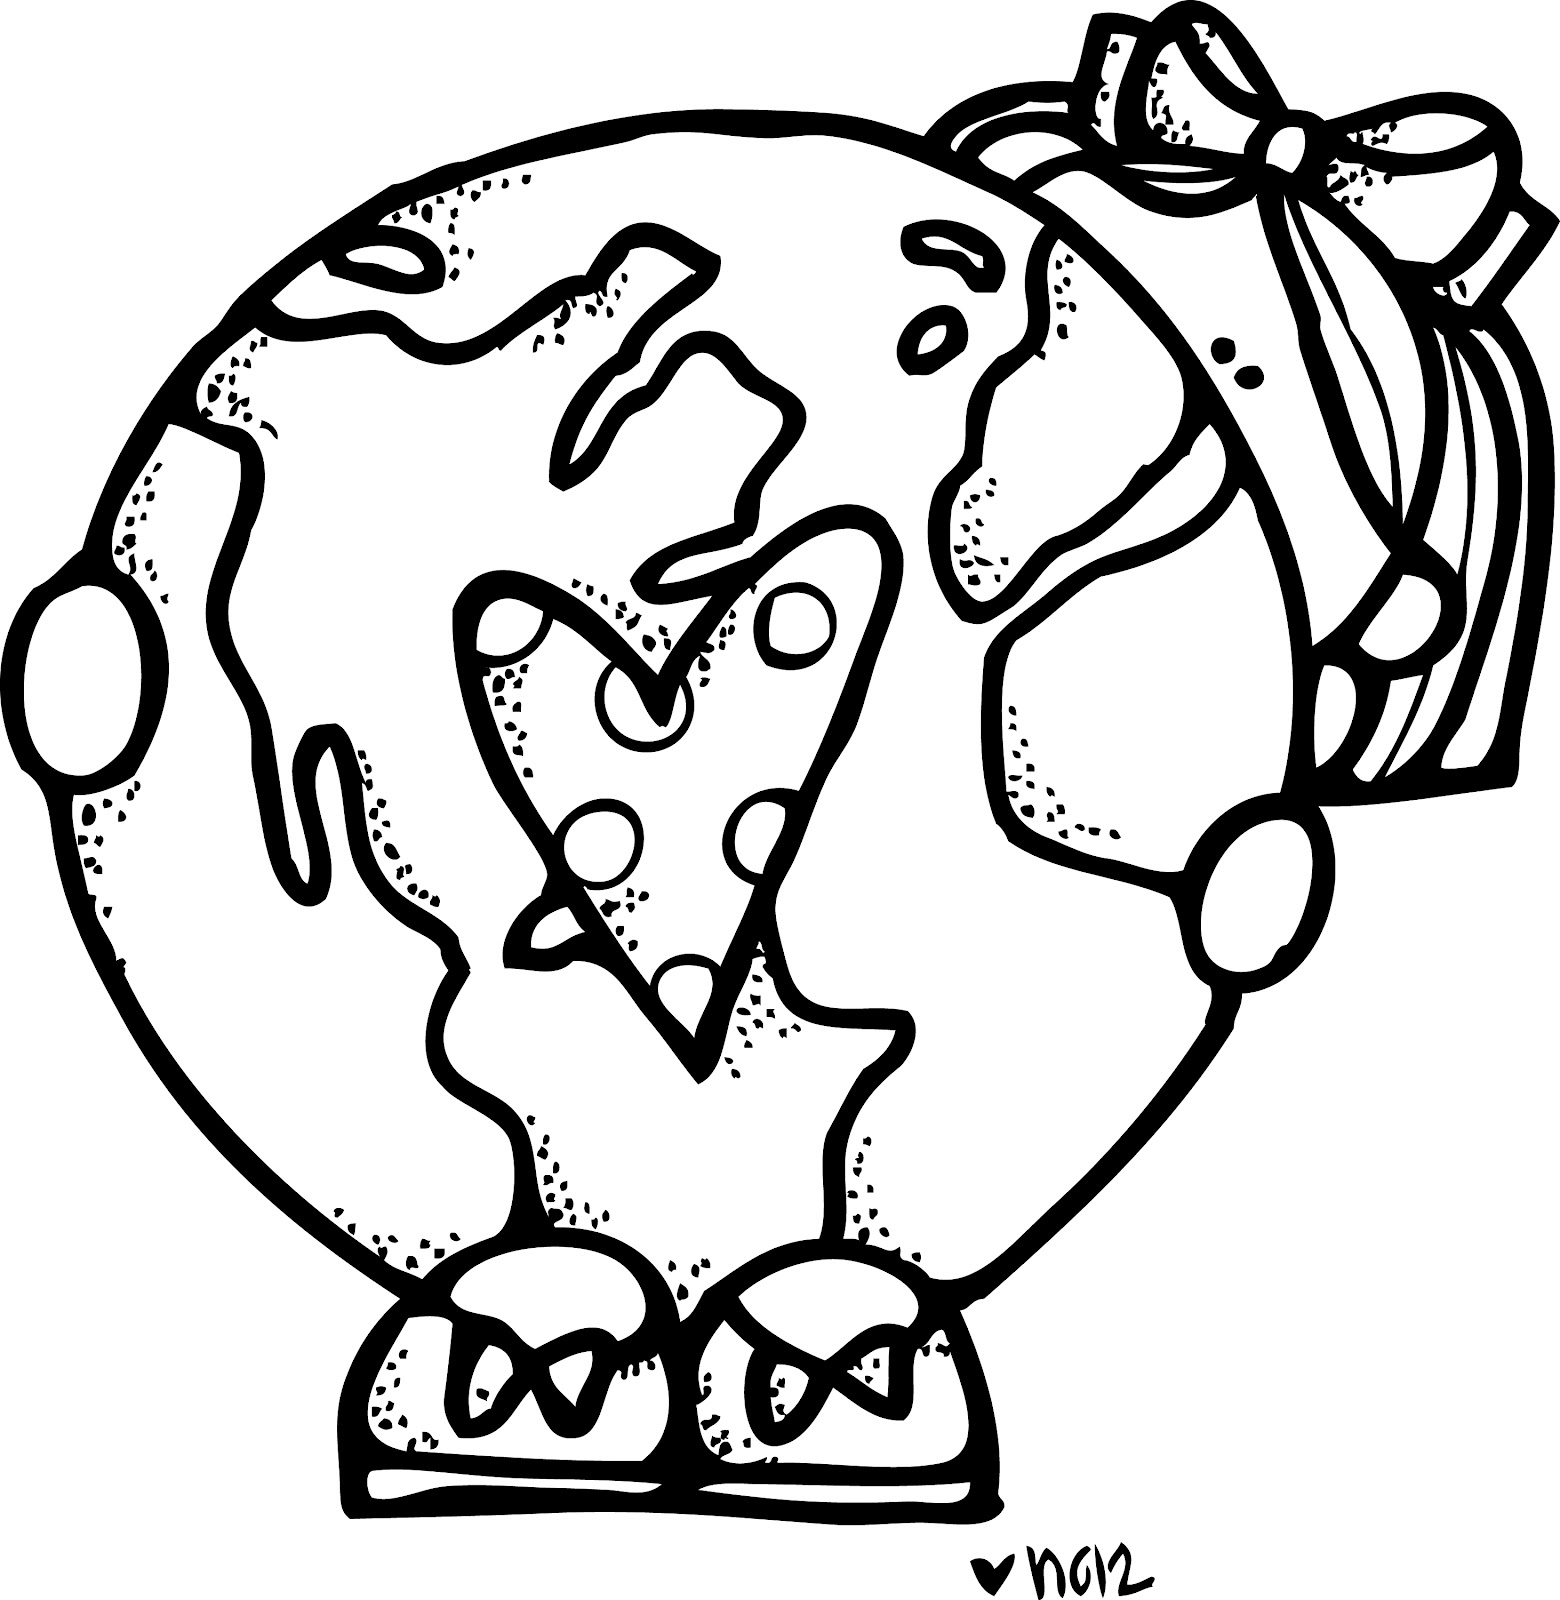 April earth day clipart black and white jpg transparent Earth Day Clip Art - 58 cliparts jpg transparent